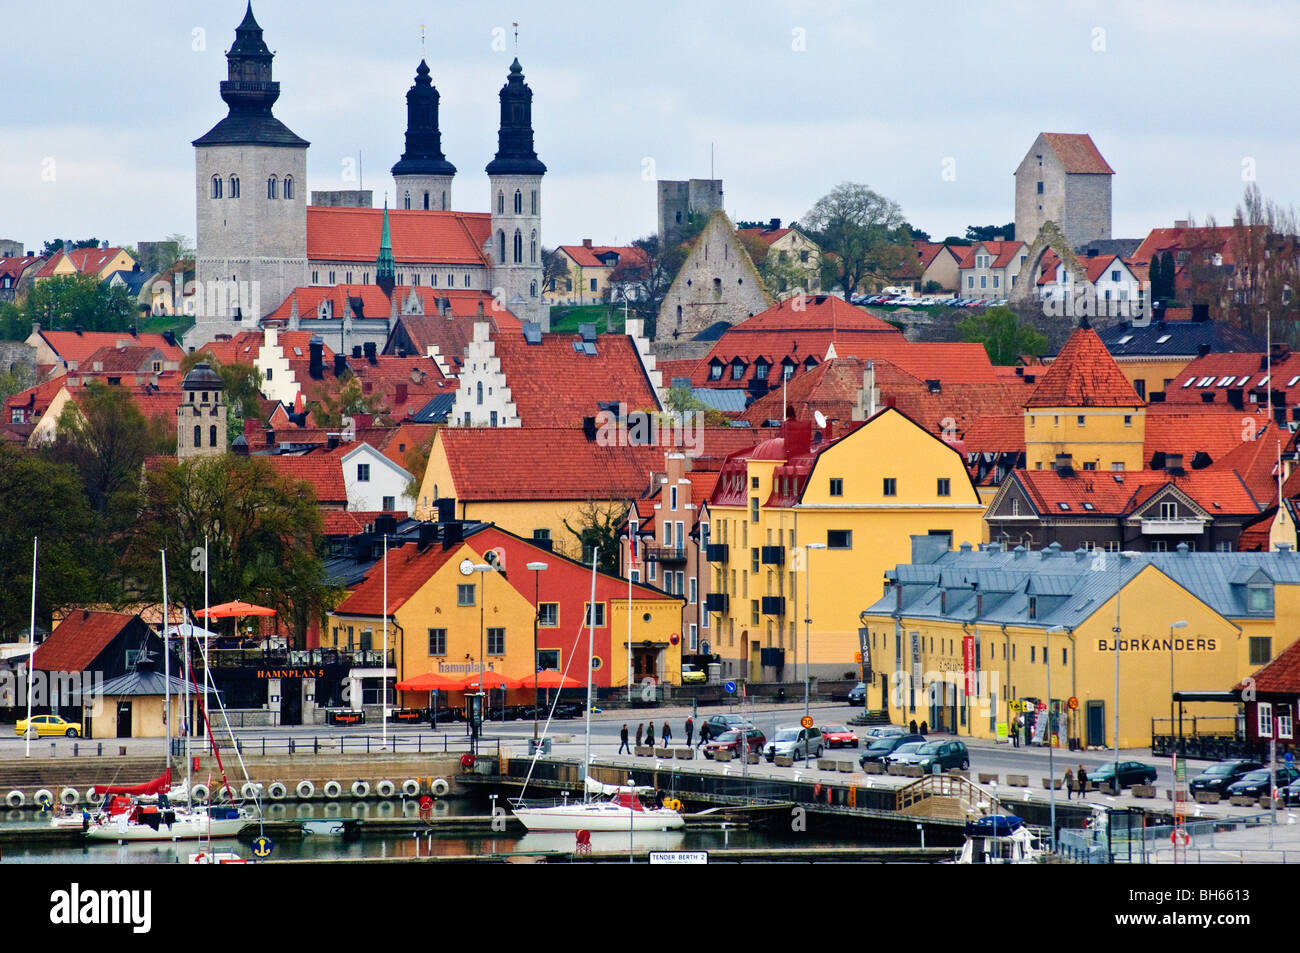 The medieval Hanseatic city of Visby, Gotland, Sweden - Stock Image